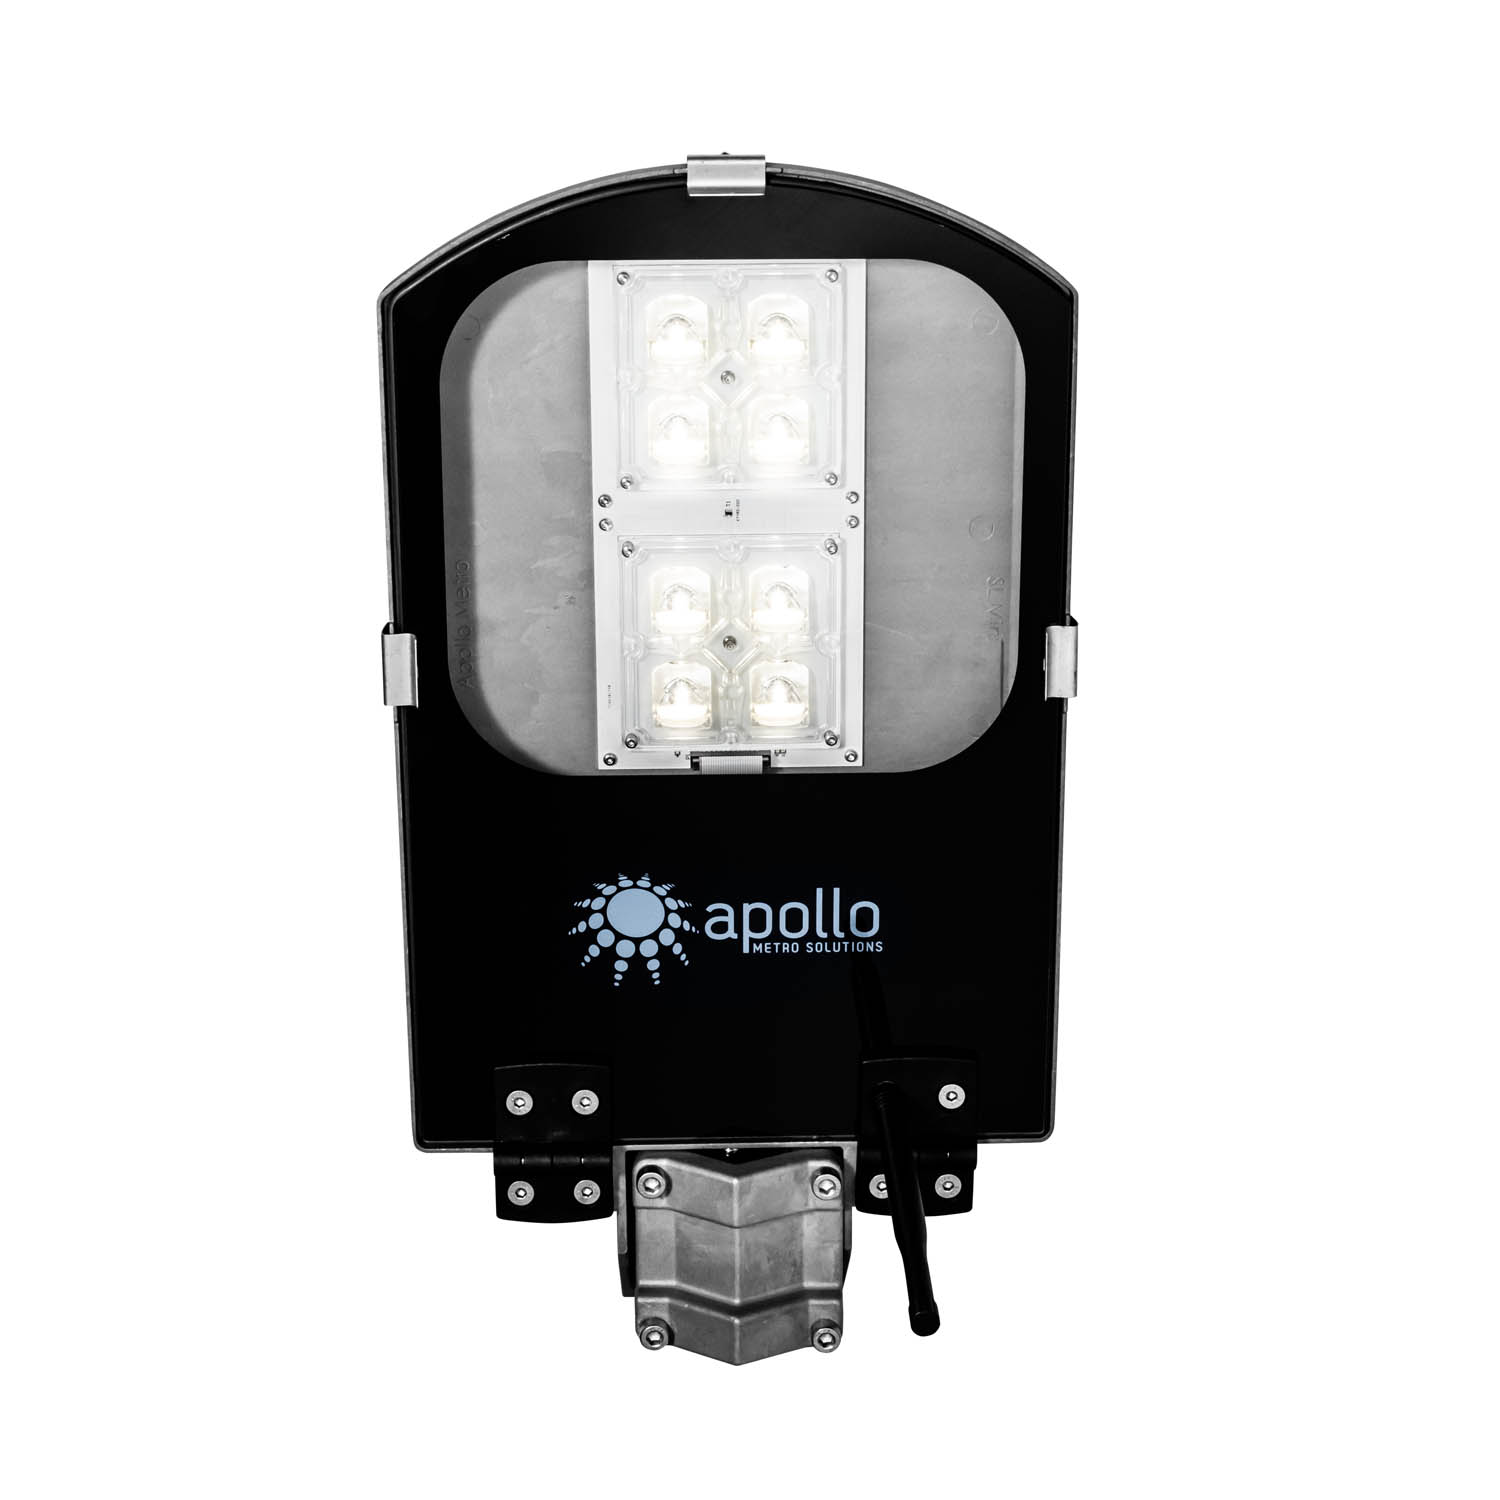 Apollo SL5 Mini LED Street Light - Front View